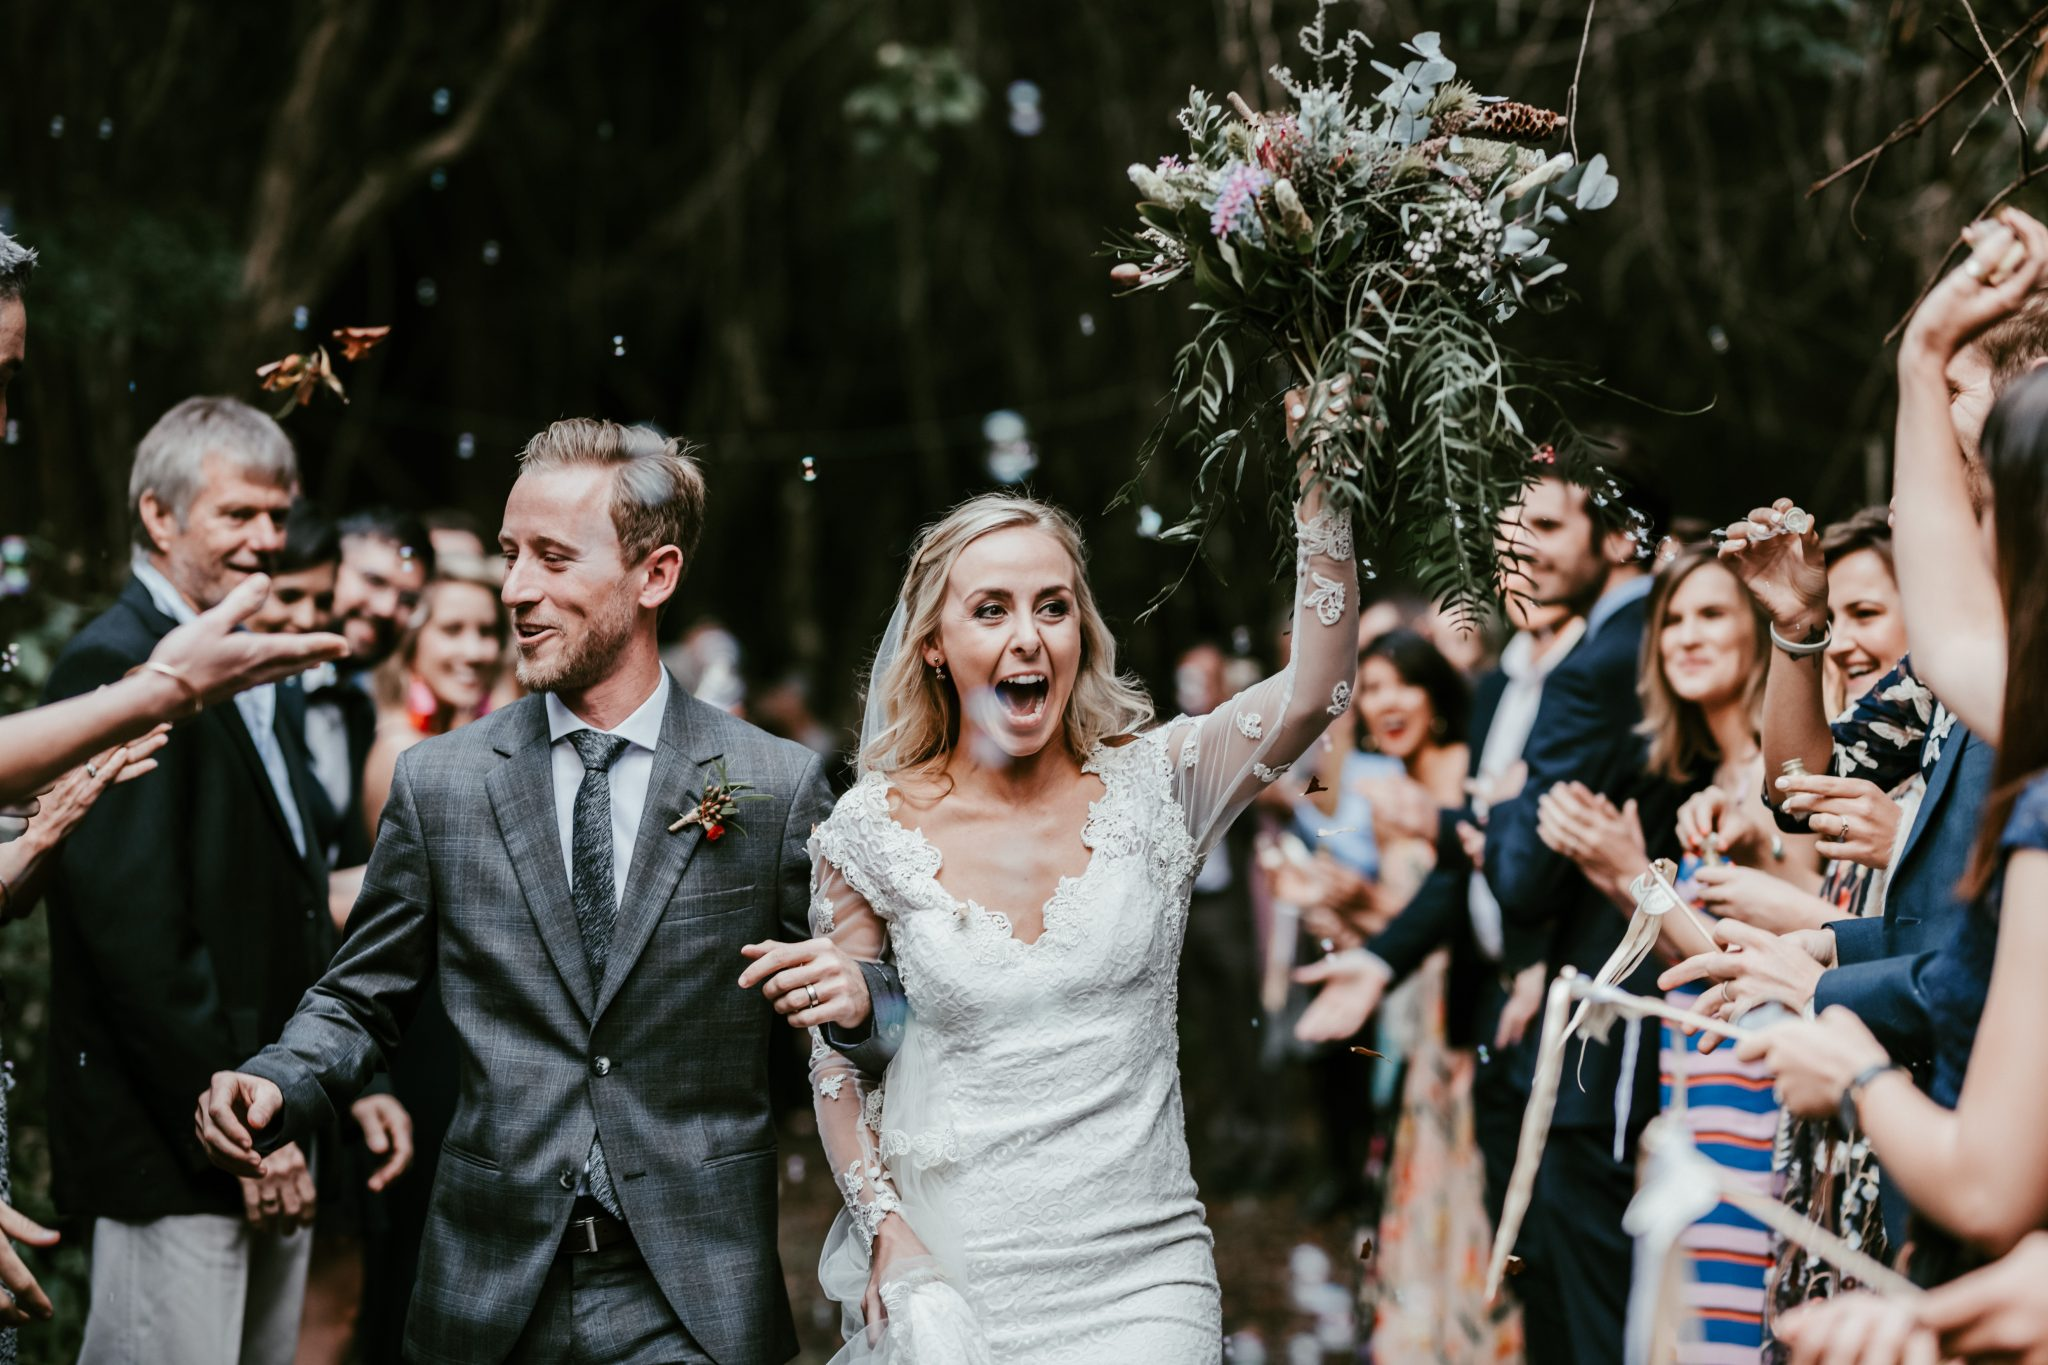 Lindsey & Mark's wedding at Natures Valley, Plettenberg Bay